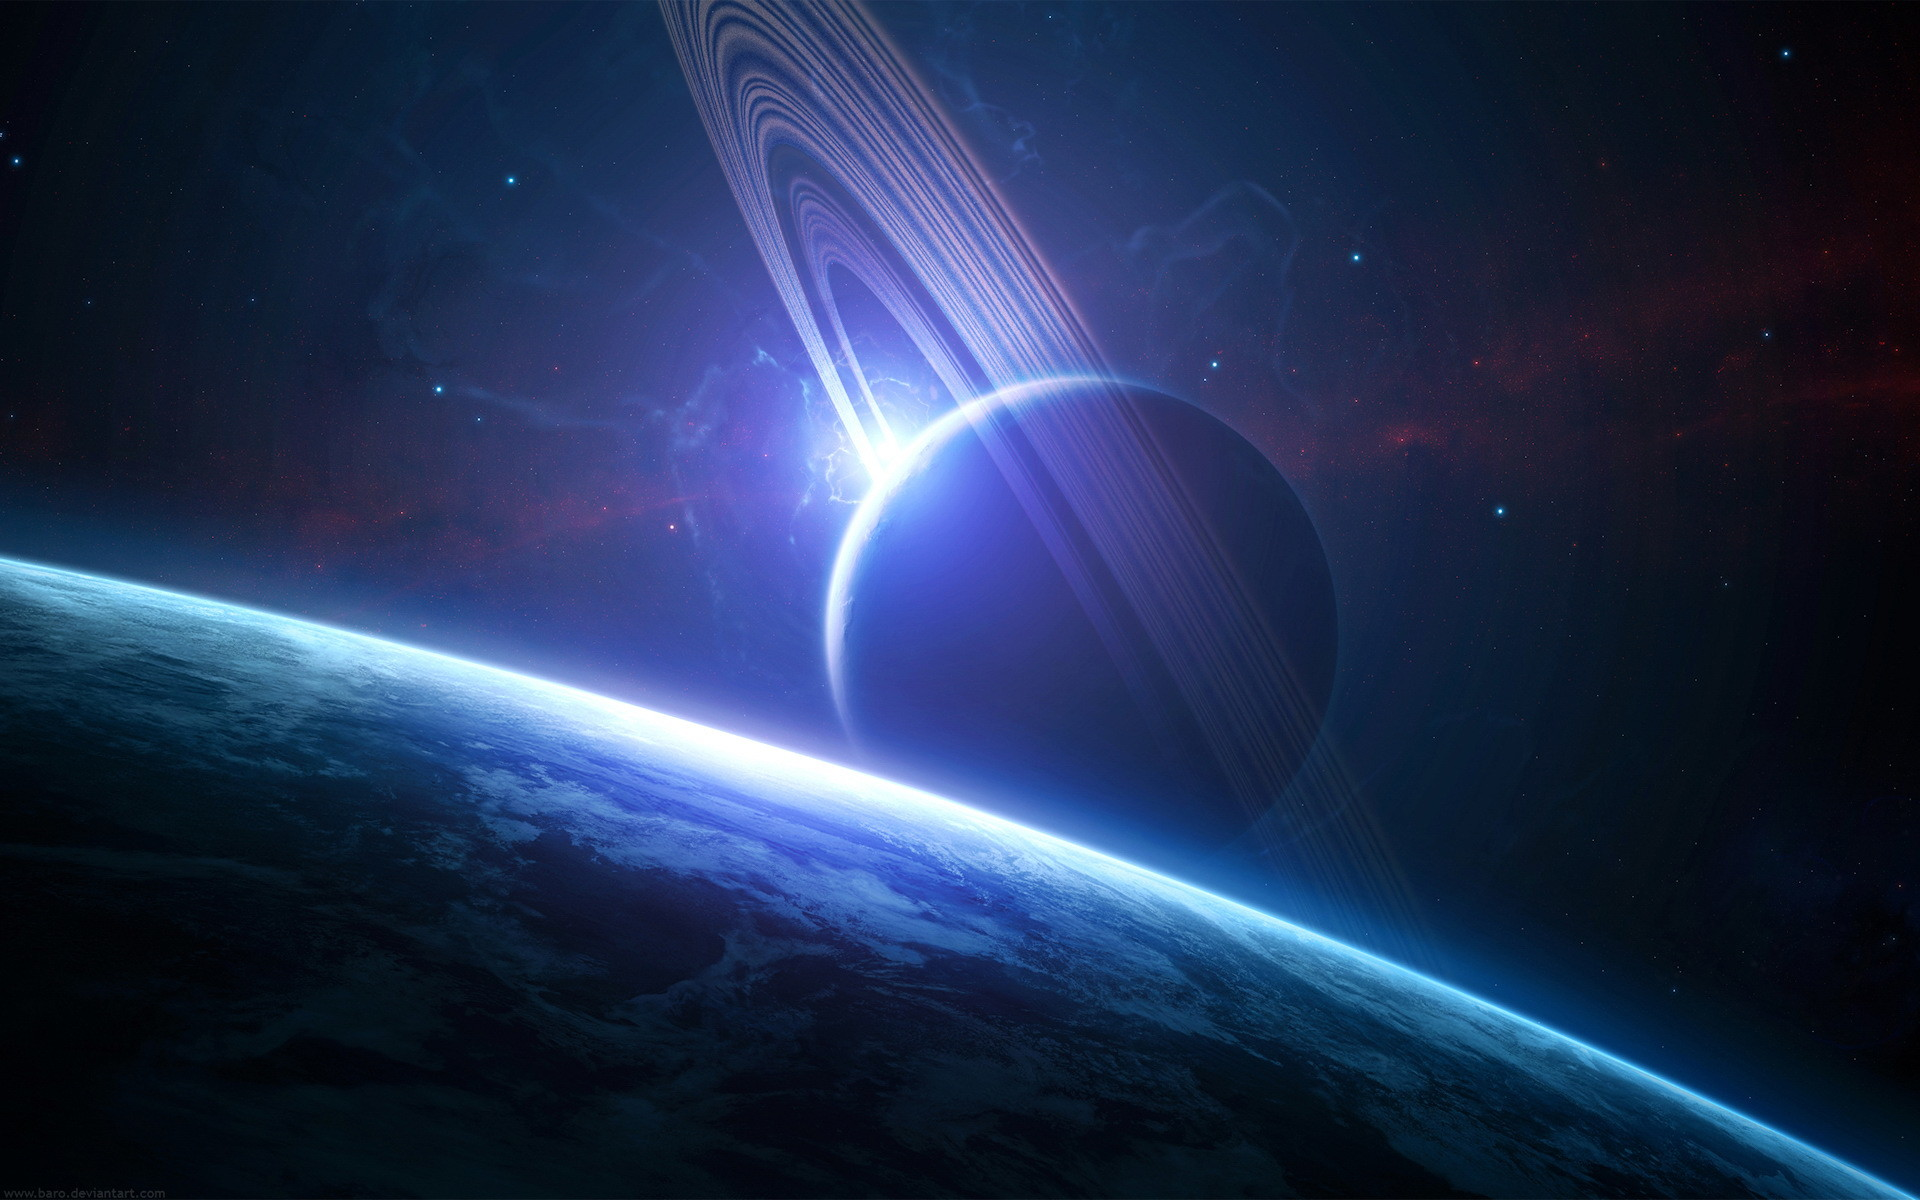 High Resolution Space Wallpapers For Desktop #6944862